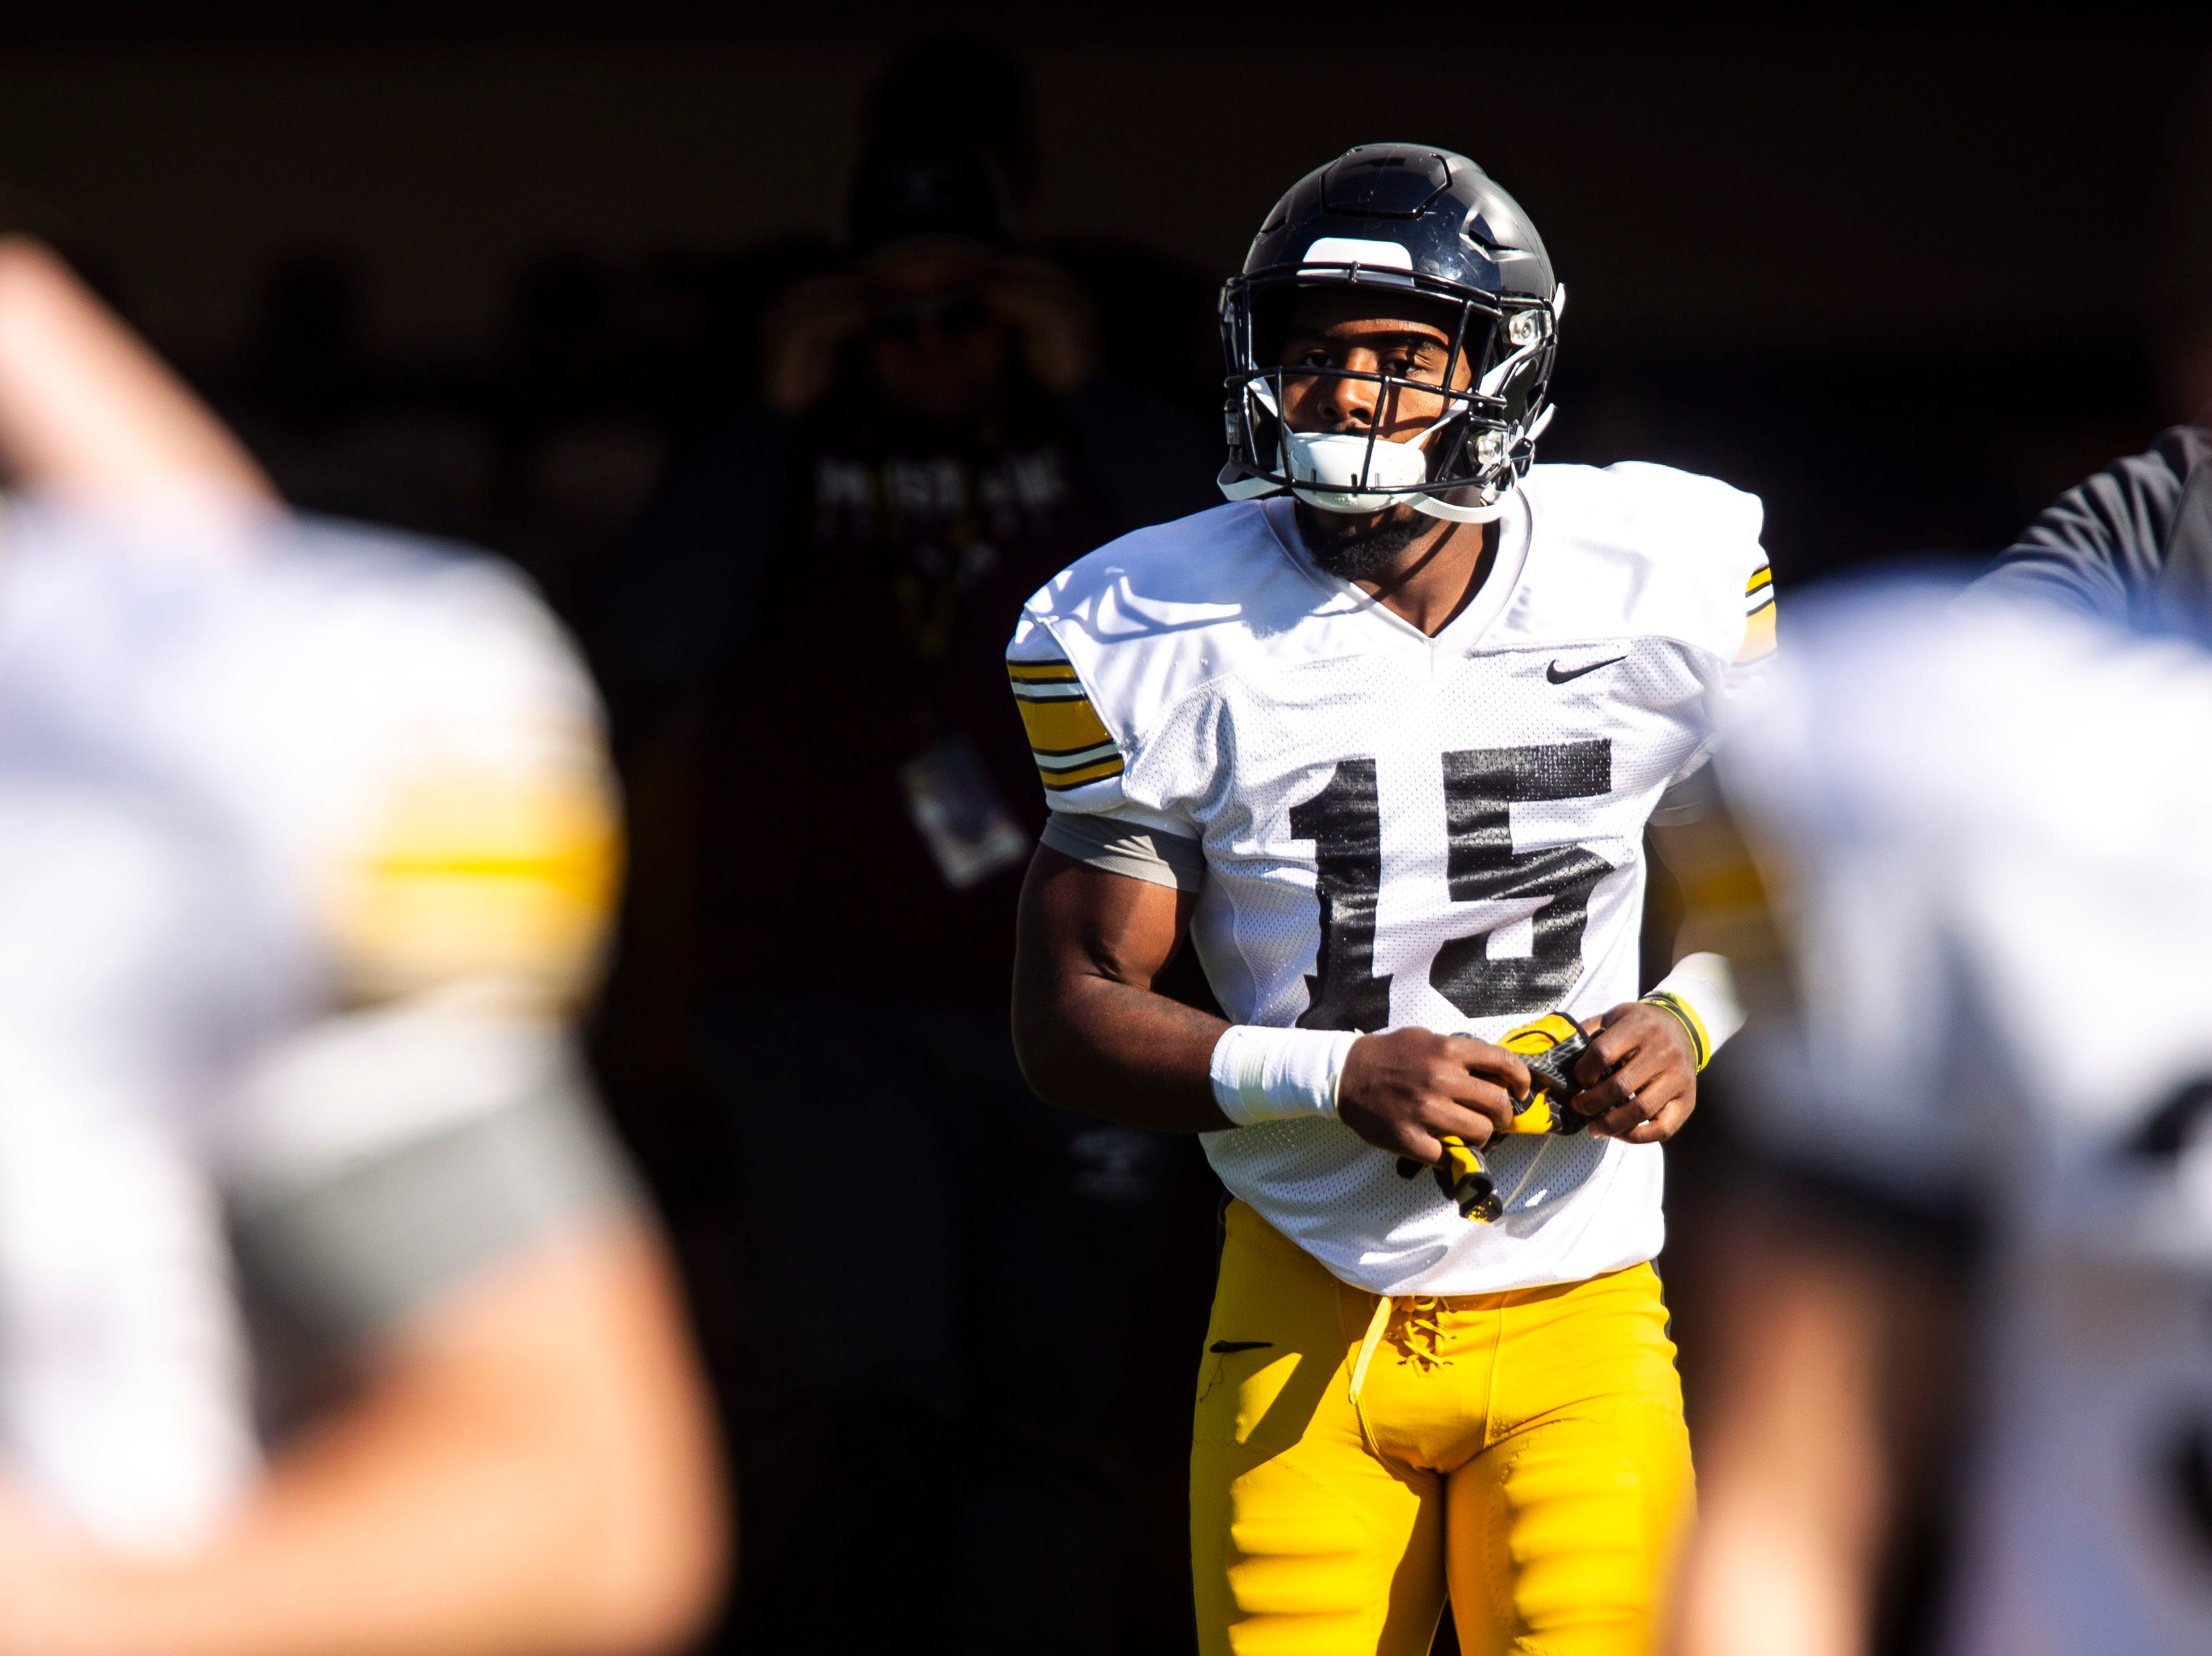 Iowa defensive back Dallas Craddieth (15) walks out to the field during the final spring football practice, Friday, April 26, 2019, at the University of Iowa outdoor practice facility in Iowa City, Iowa.